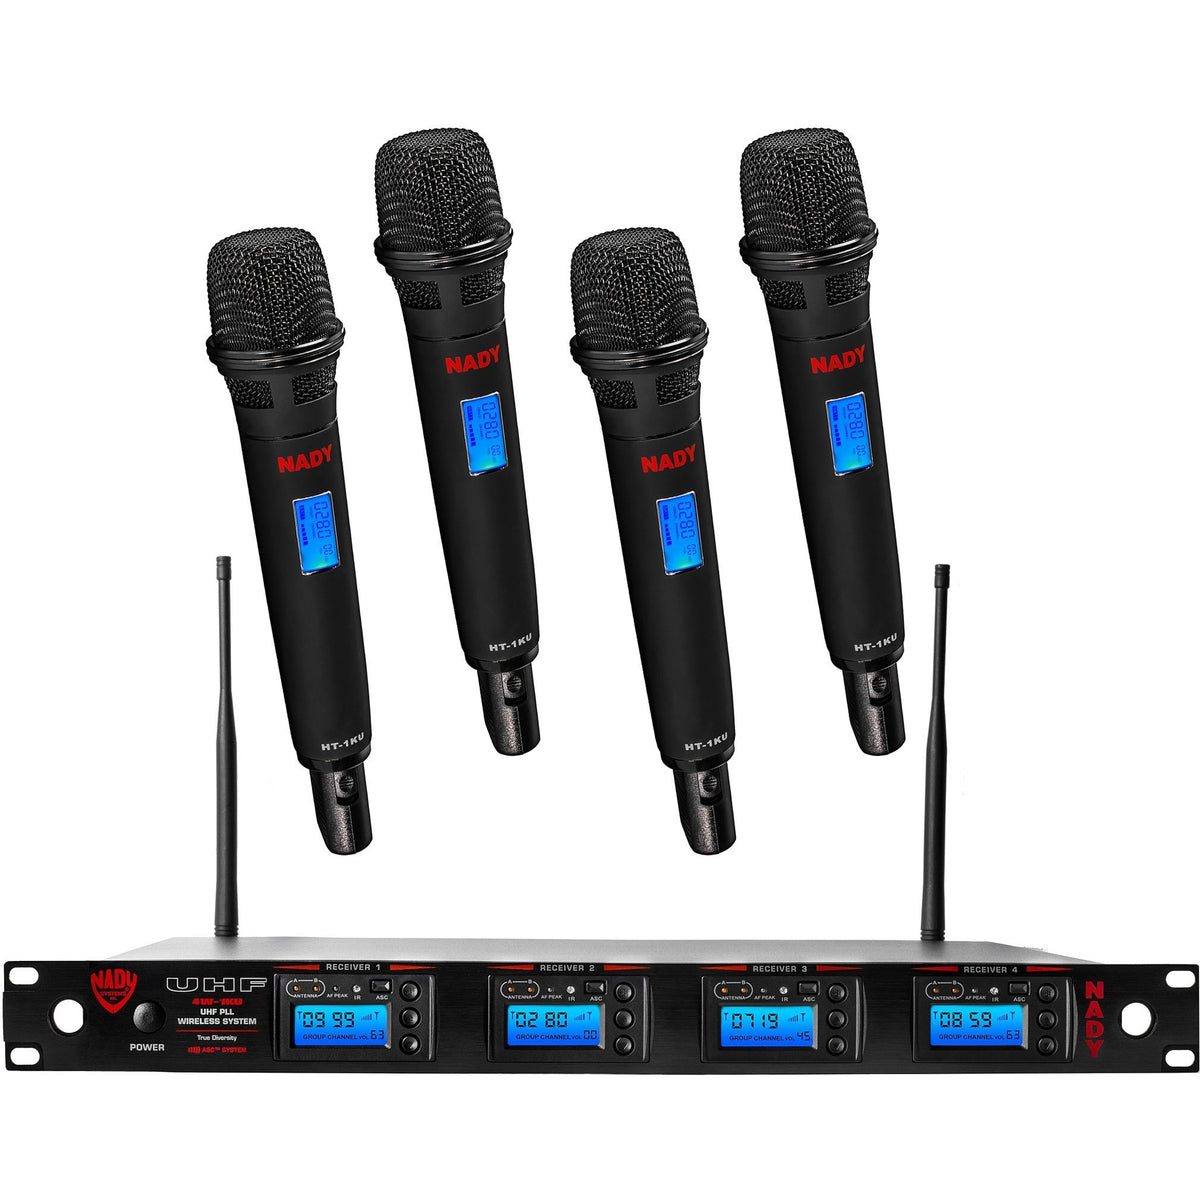 Nady 4W-1KU HT 4-Channel Handheld Wireless Microphone System, Band 3